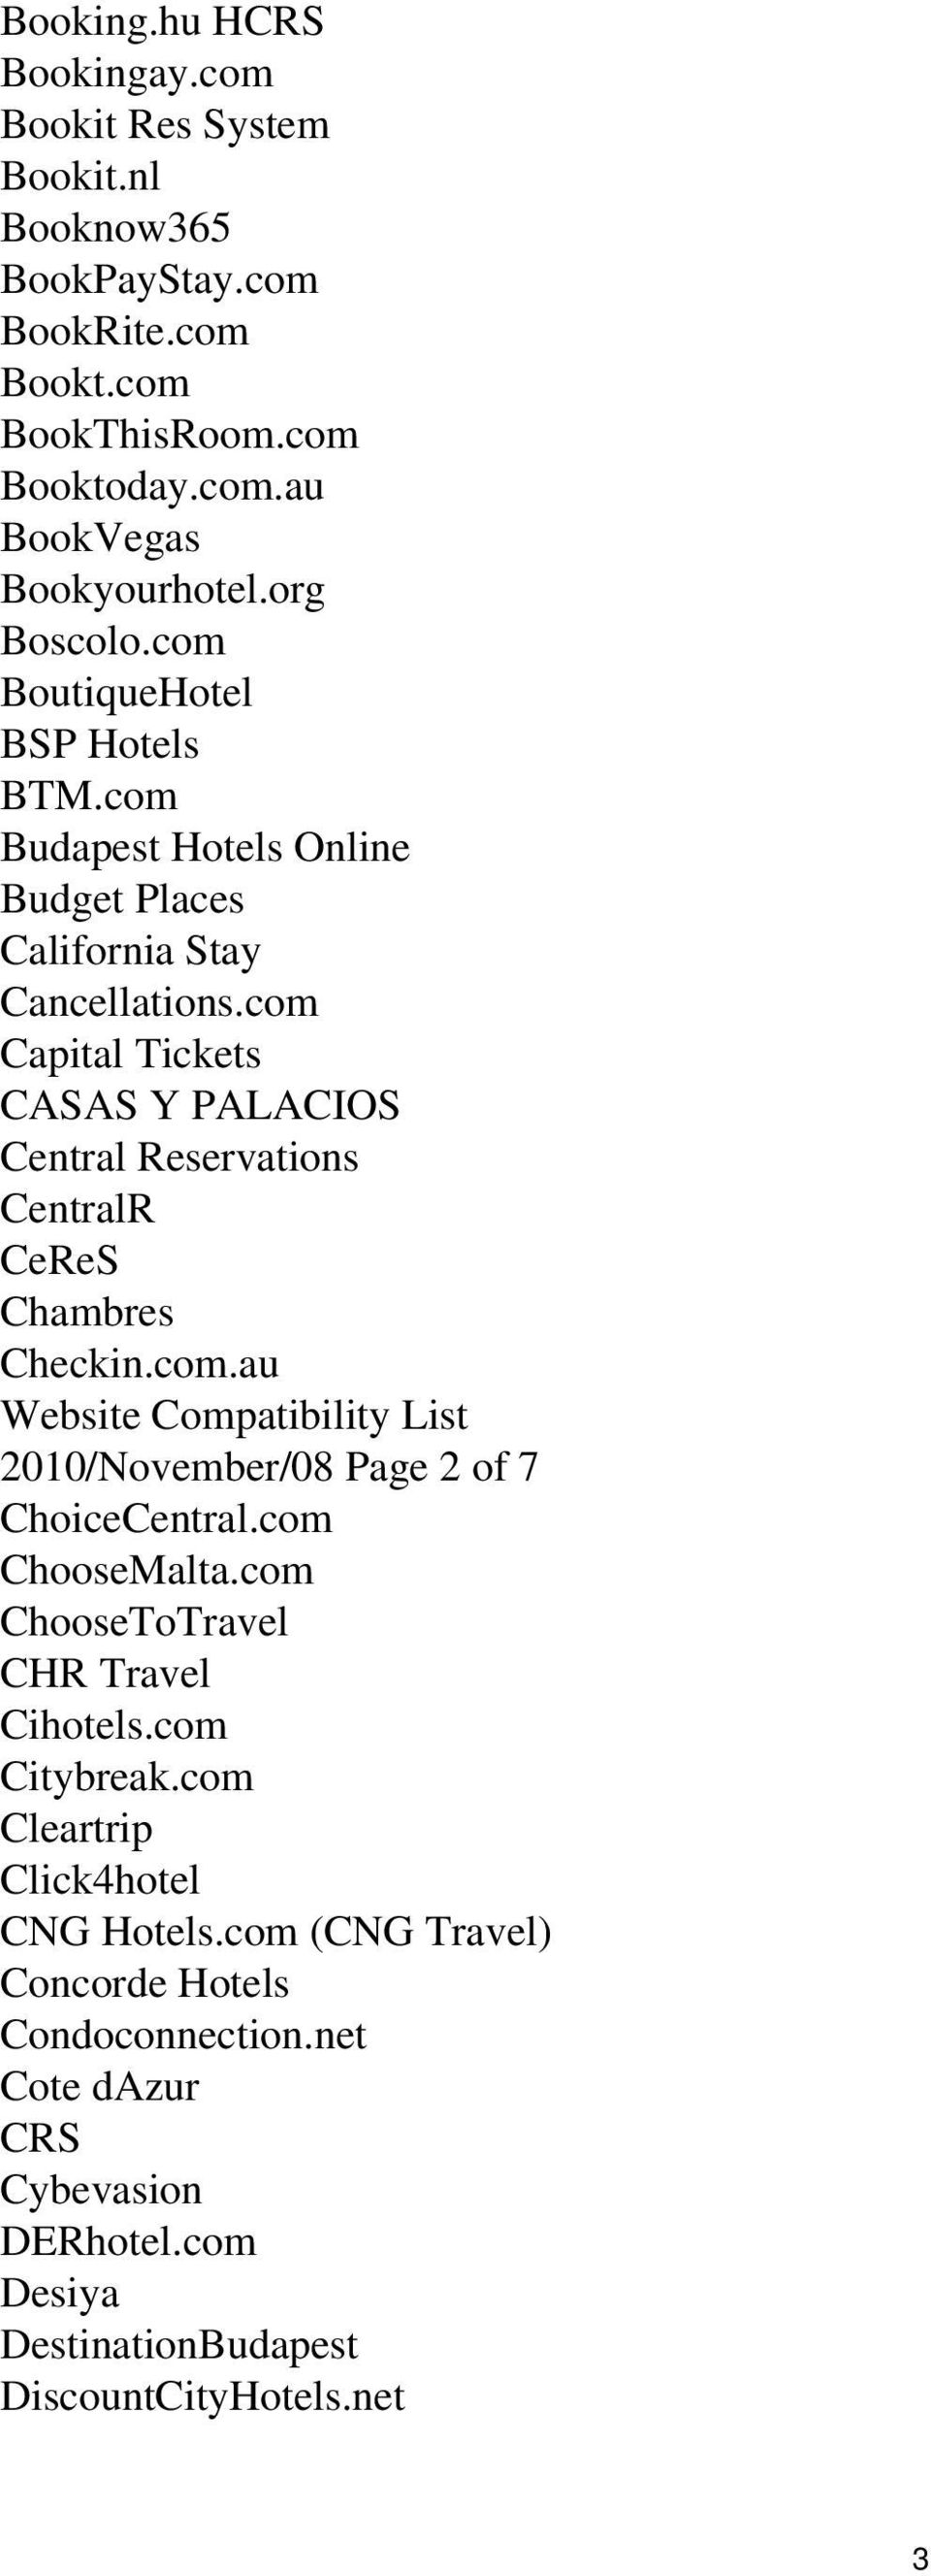 com Capital Tickets CASAS Y PALACIOS Central Reservations CentralR CeReS Chambres Checkin.com.au Website Compatibility List 2010/November/08 Page 2 of 7 ChoiceCentral.